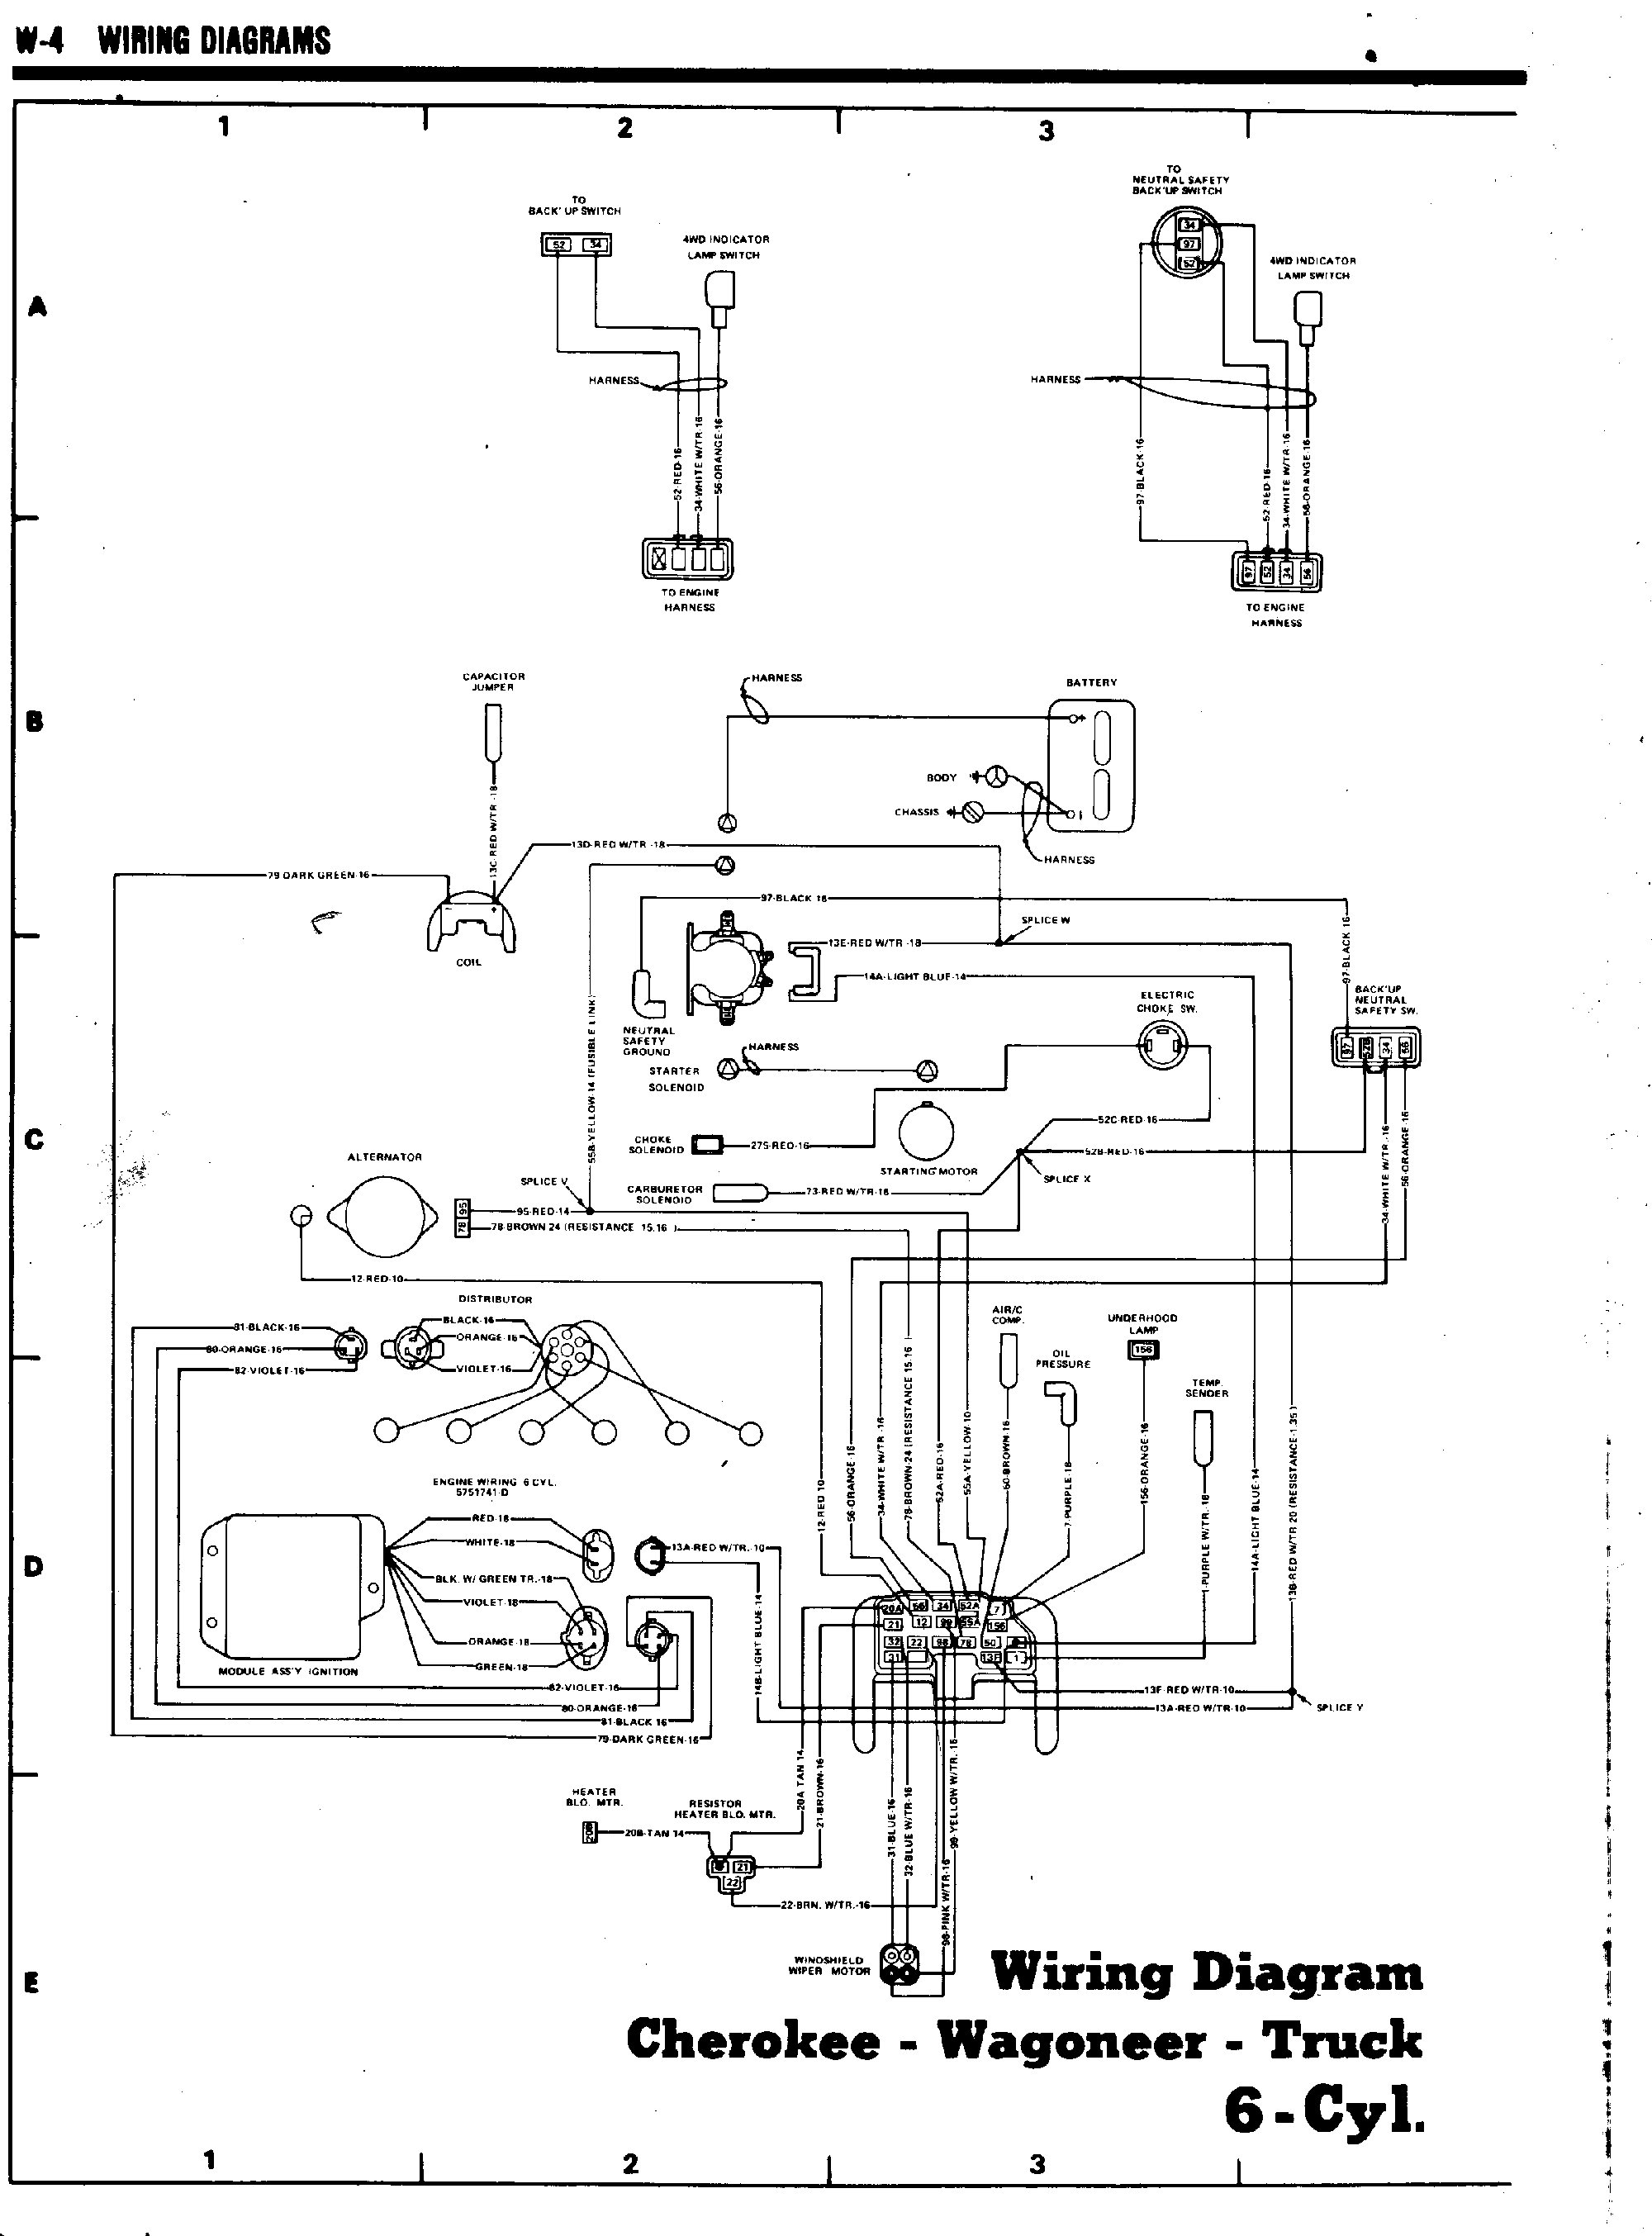 jeep j10 wiring diagrams 1980s jeep solenoid switch third wire post wtf? - s-10 forum 1983 jeep j10 wiring diagram dash